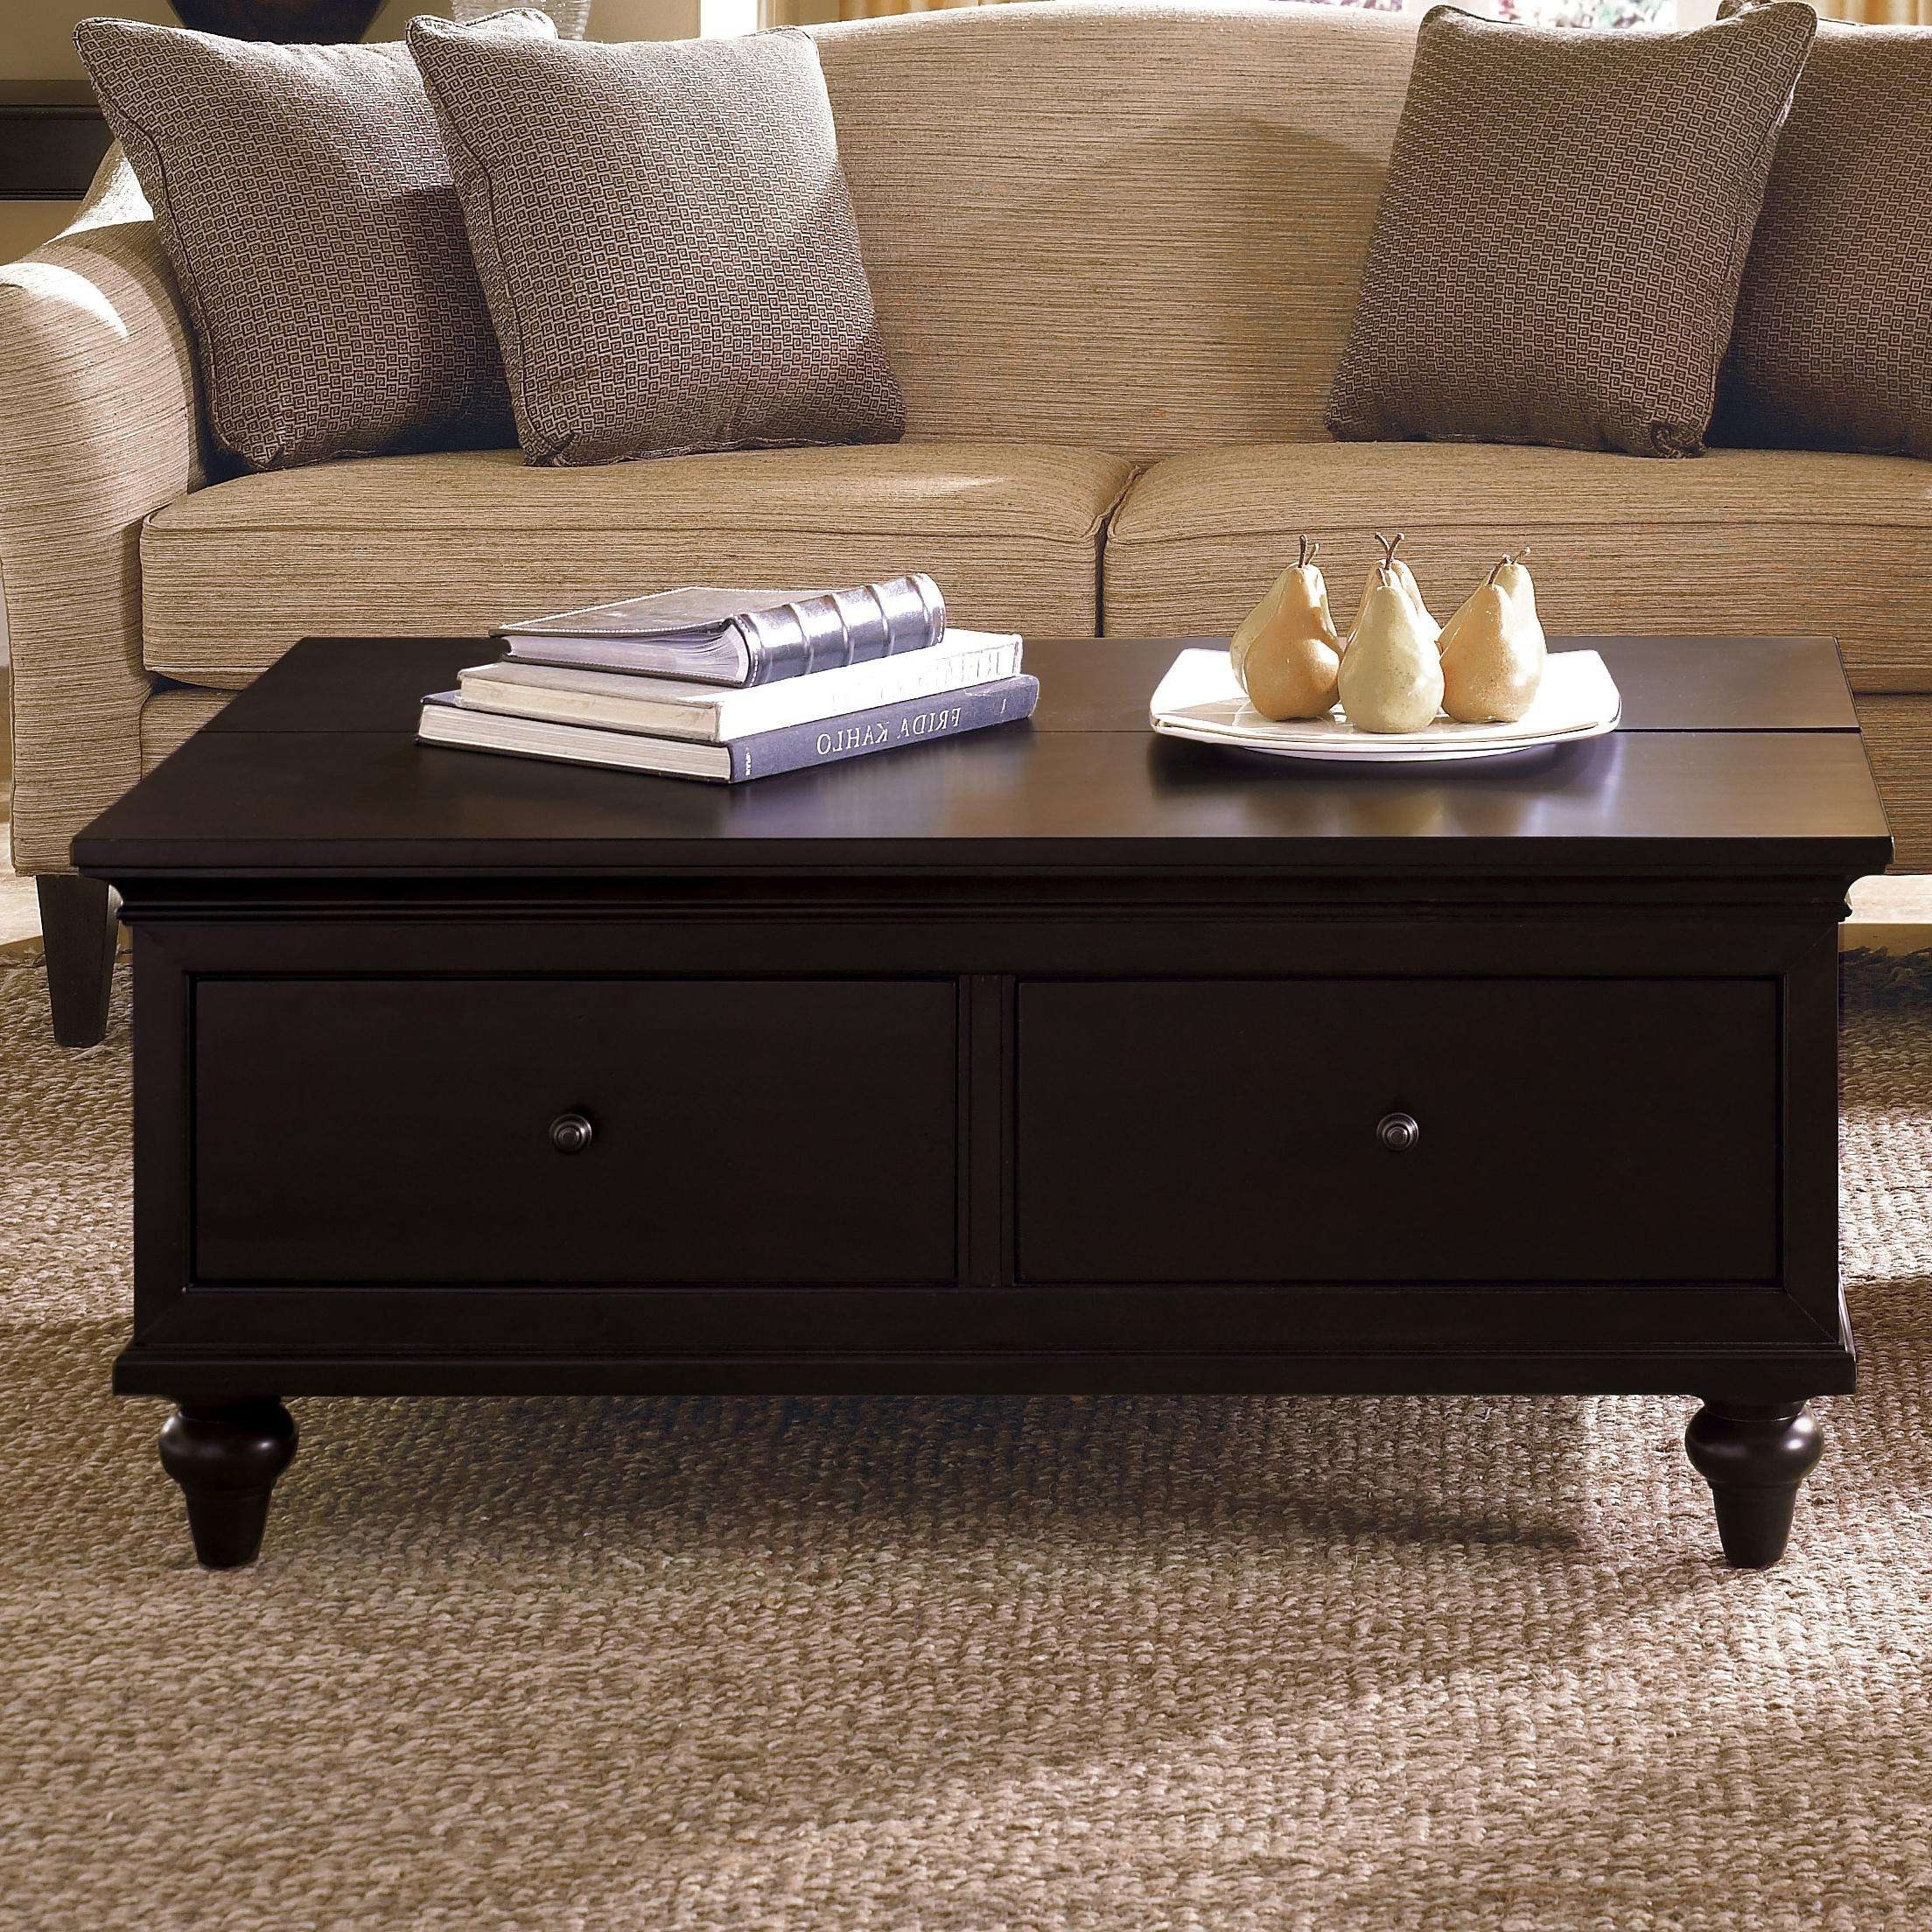 Trendy Square Coffee Table With Storage Drawers Pertaining To Square Coffee Table With Storage Drawers • Drawer Ideas (View 4 of 20)